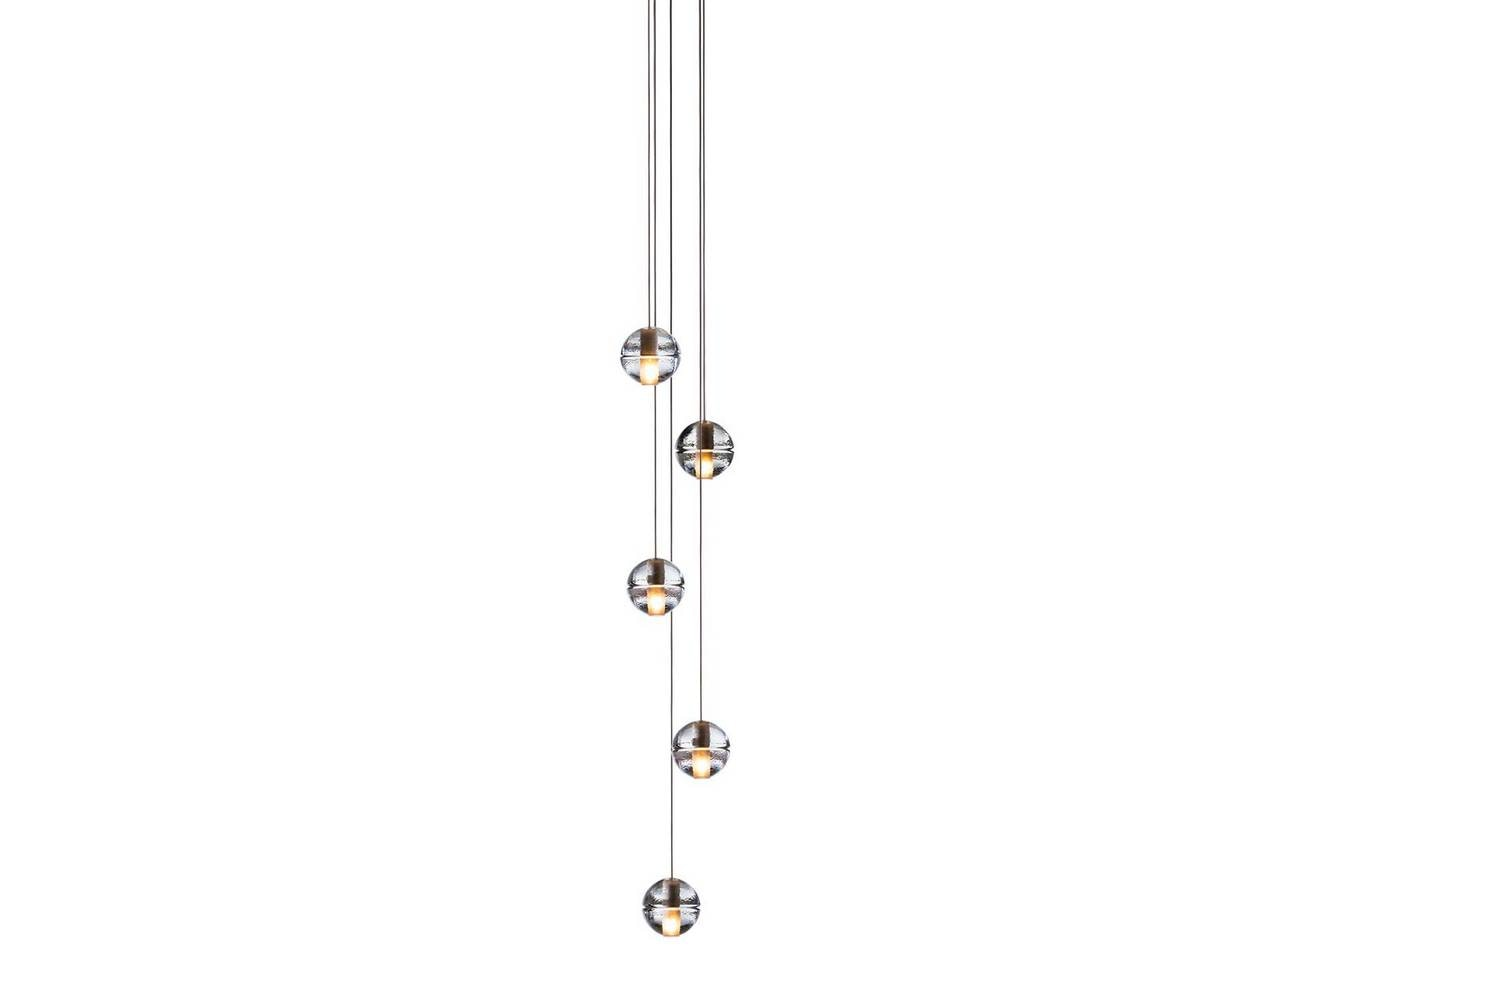 14.5 Standard Suspension Lamp by Omer Arbel for Bocci